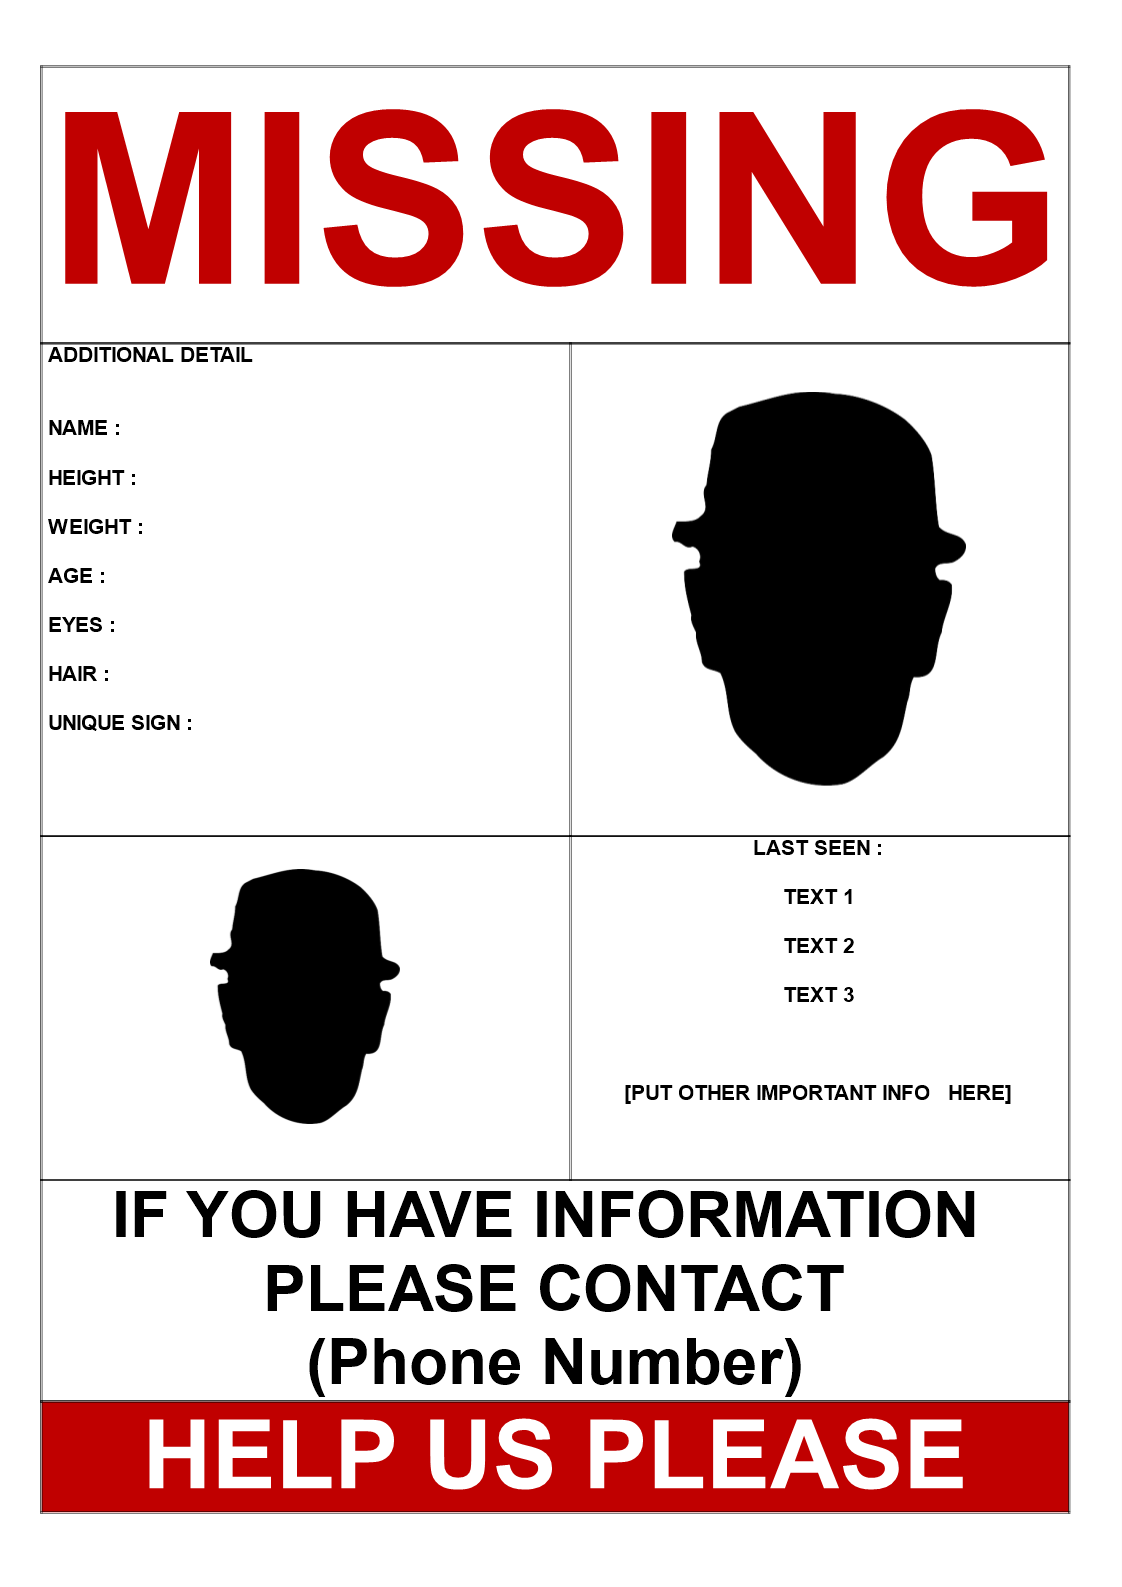 OtherMissing Person Poster Template FreewordtemplatesnetMissing Free Word Templates60 Customizable Design Templates For Missing